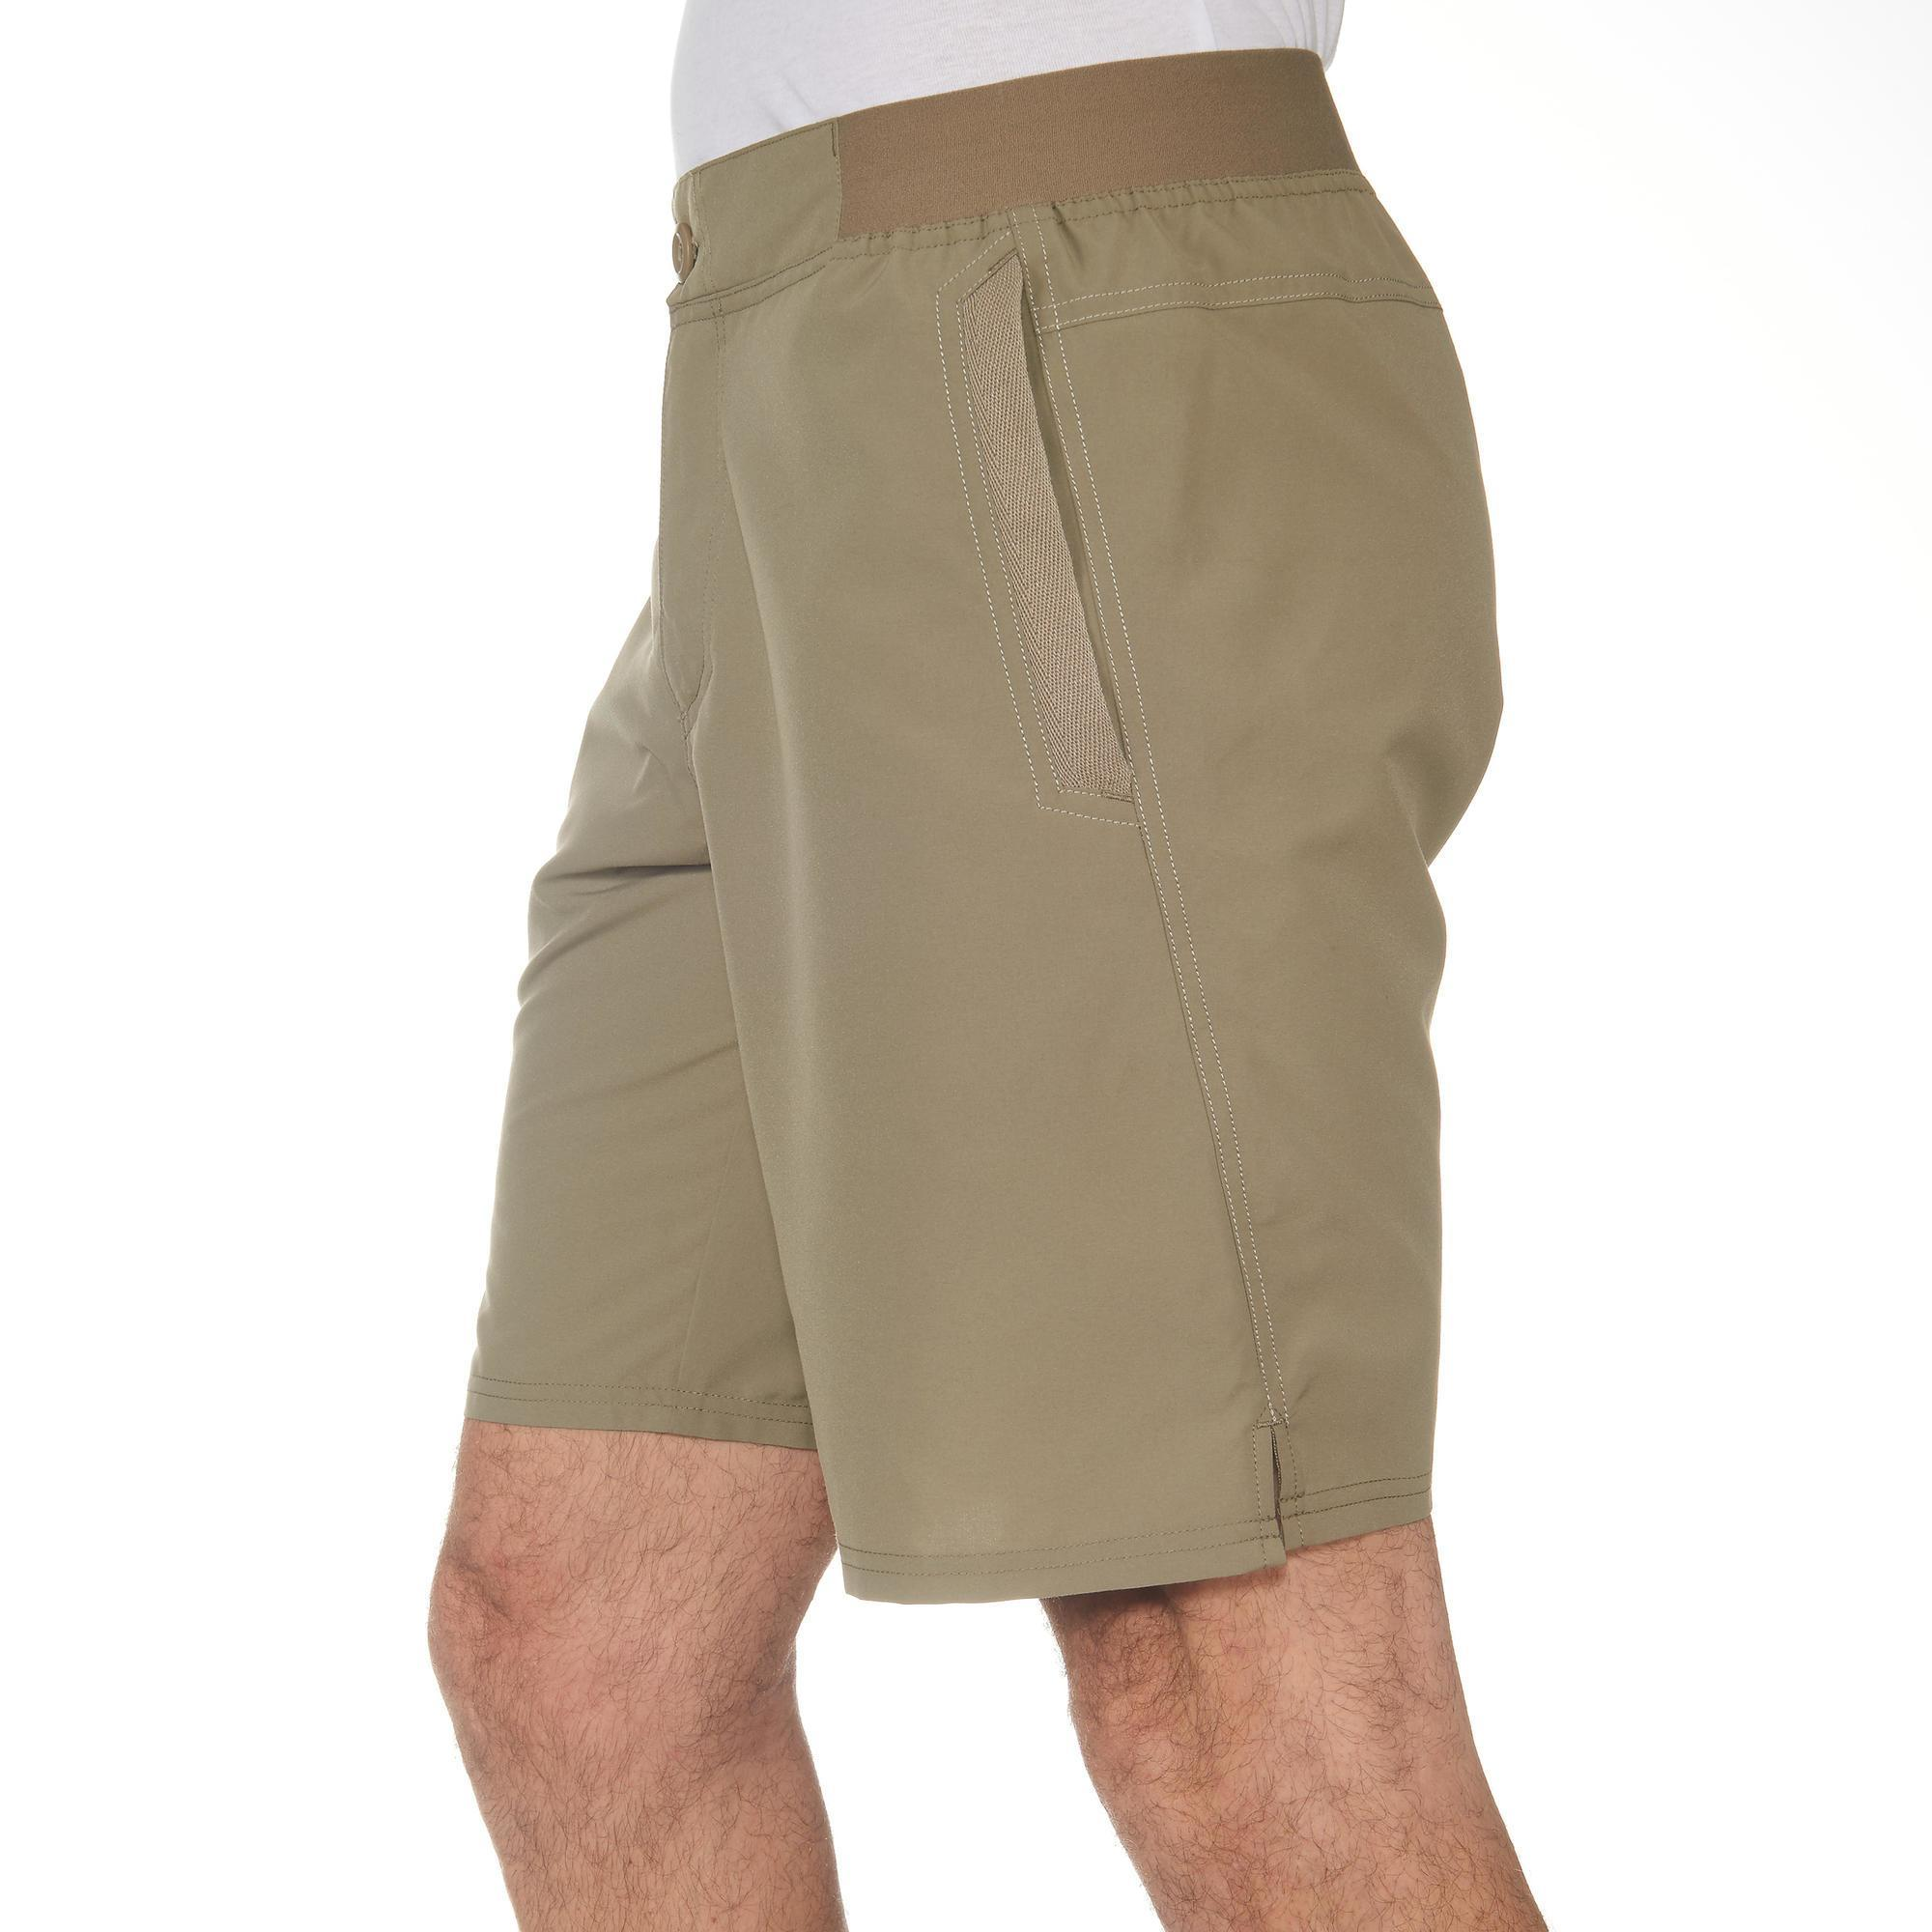 Sandalias De Senderismo Naturaleza Nh100 Beige Hombre from Decathlon on 21 Buttons